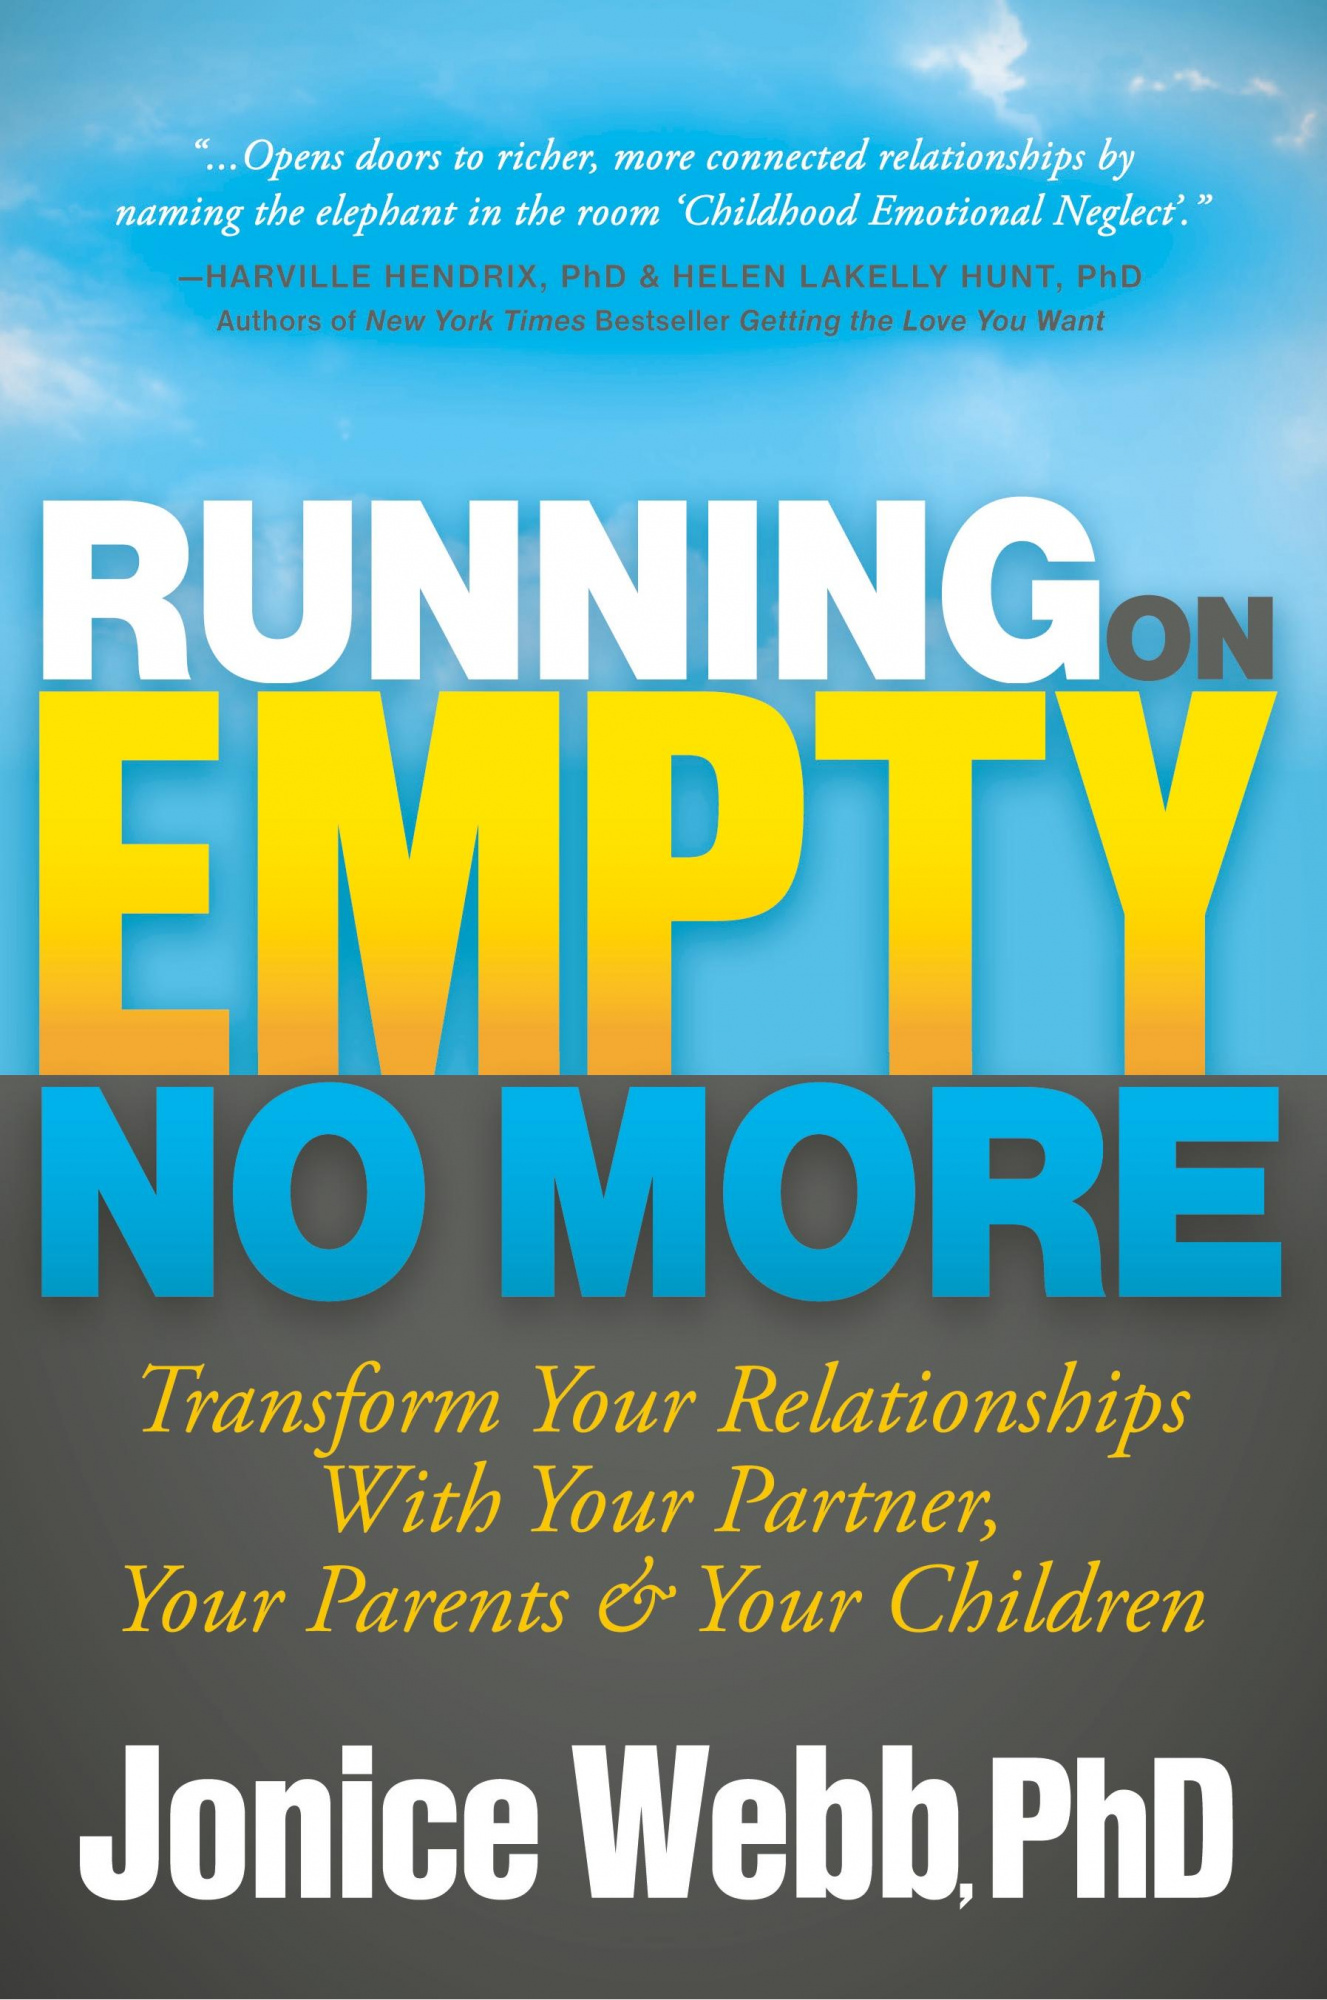 Running on Empty No More: Transform Your Relationships with Your Partner, Your Parents and Your Children by Jonice Webb PhD, ISBN: 9781683506737